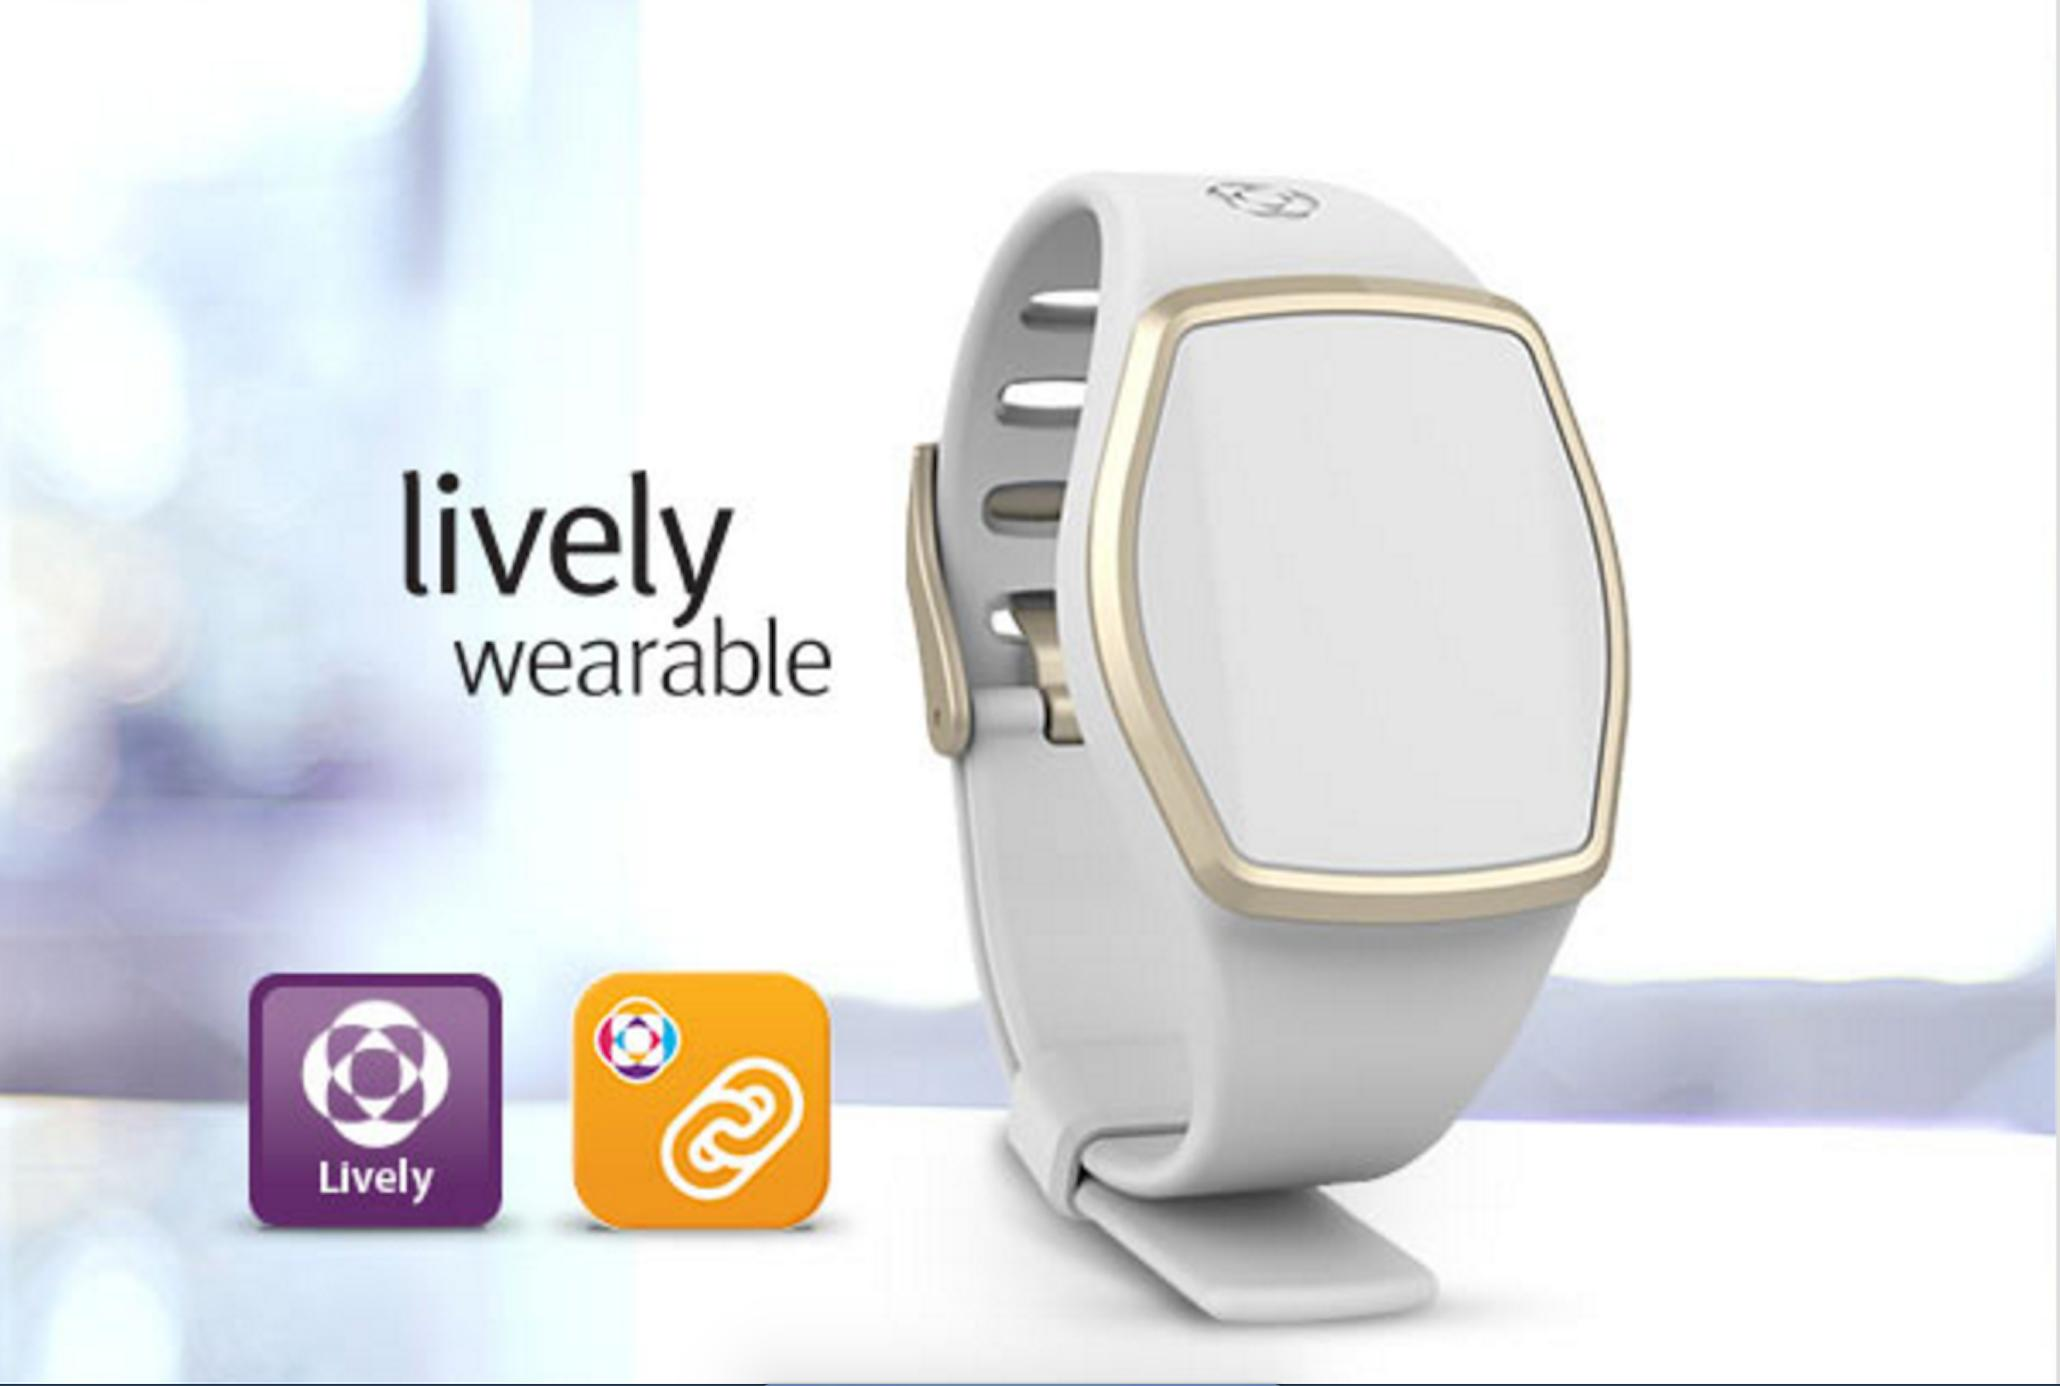 The Lively Wearable will help grandma stay safe and physically active